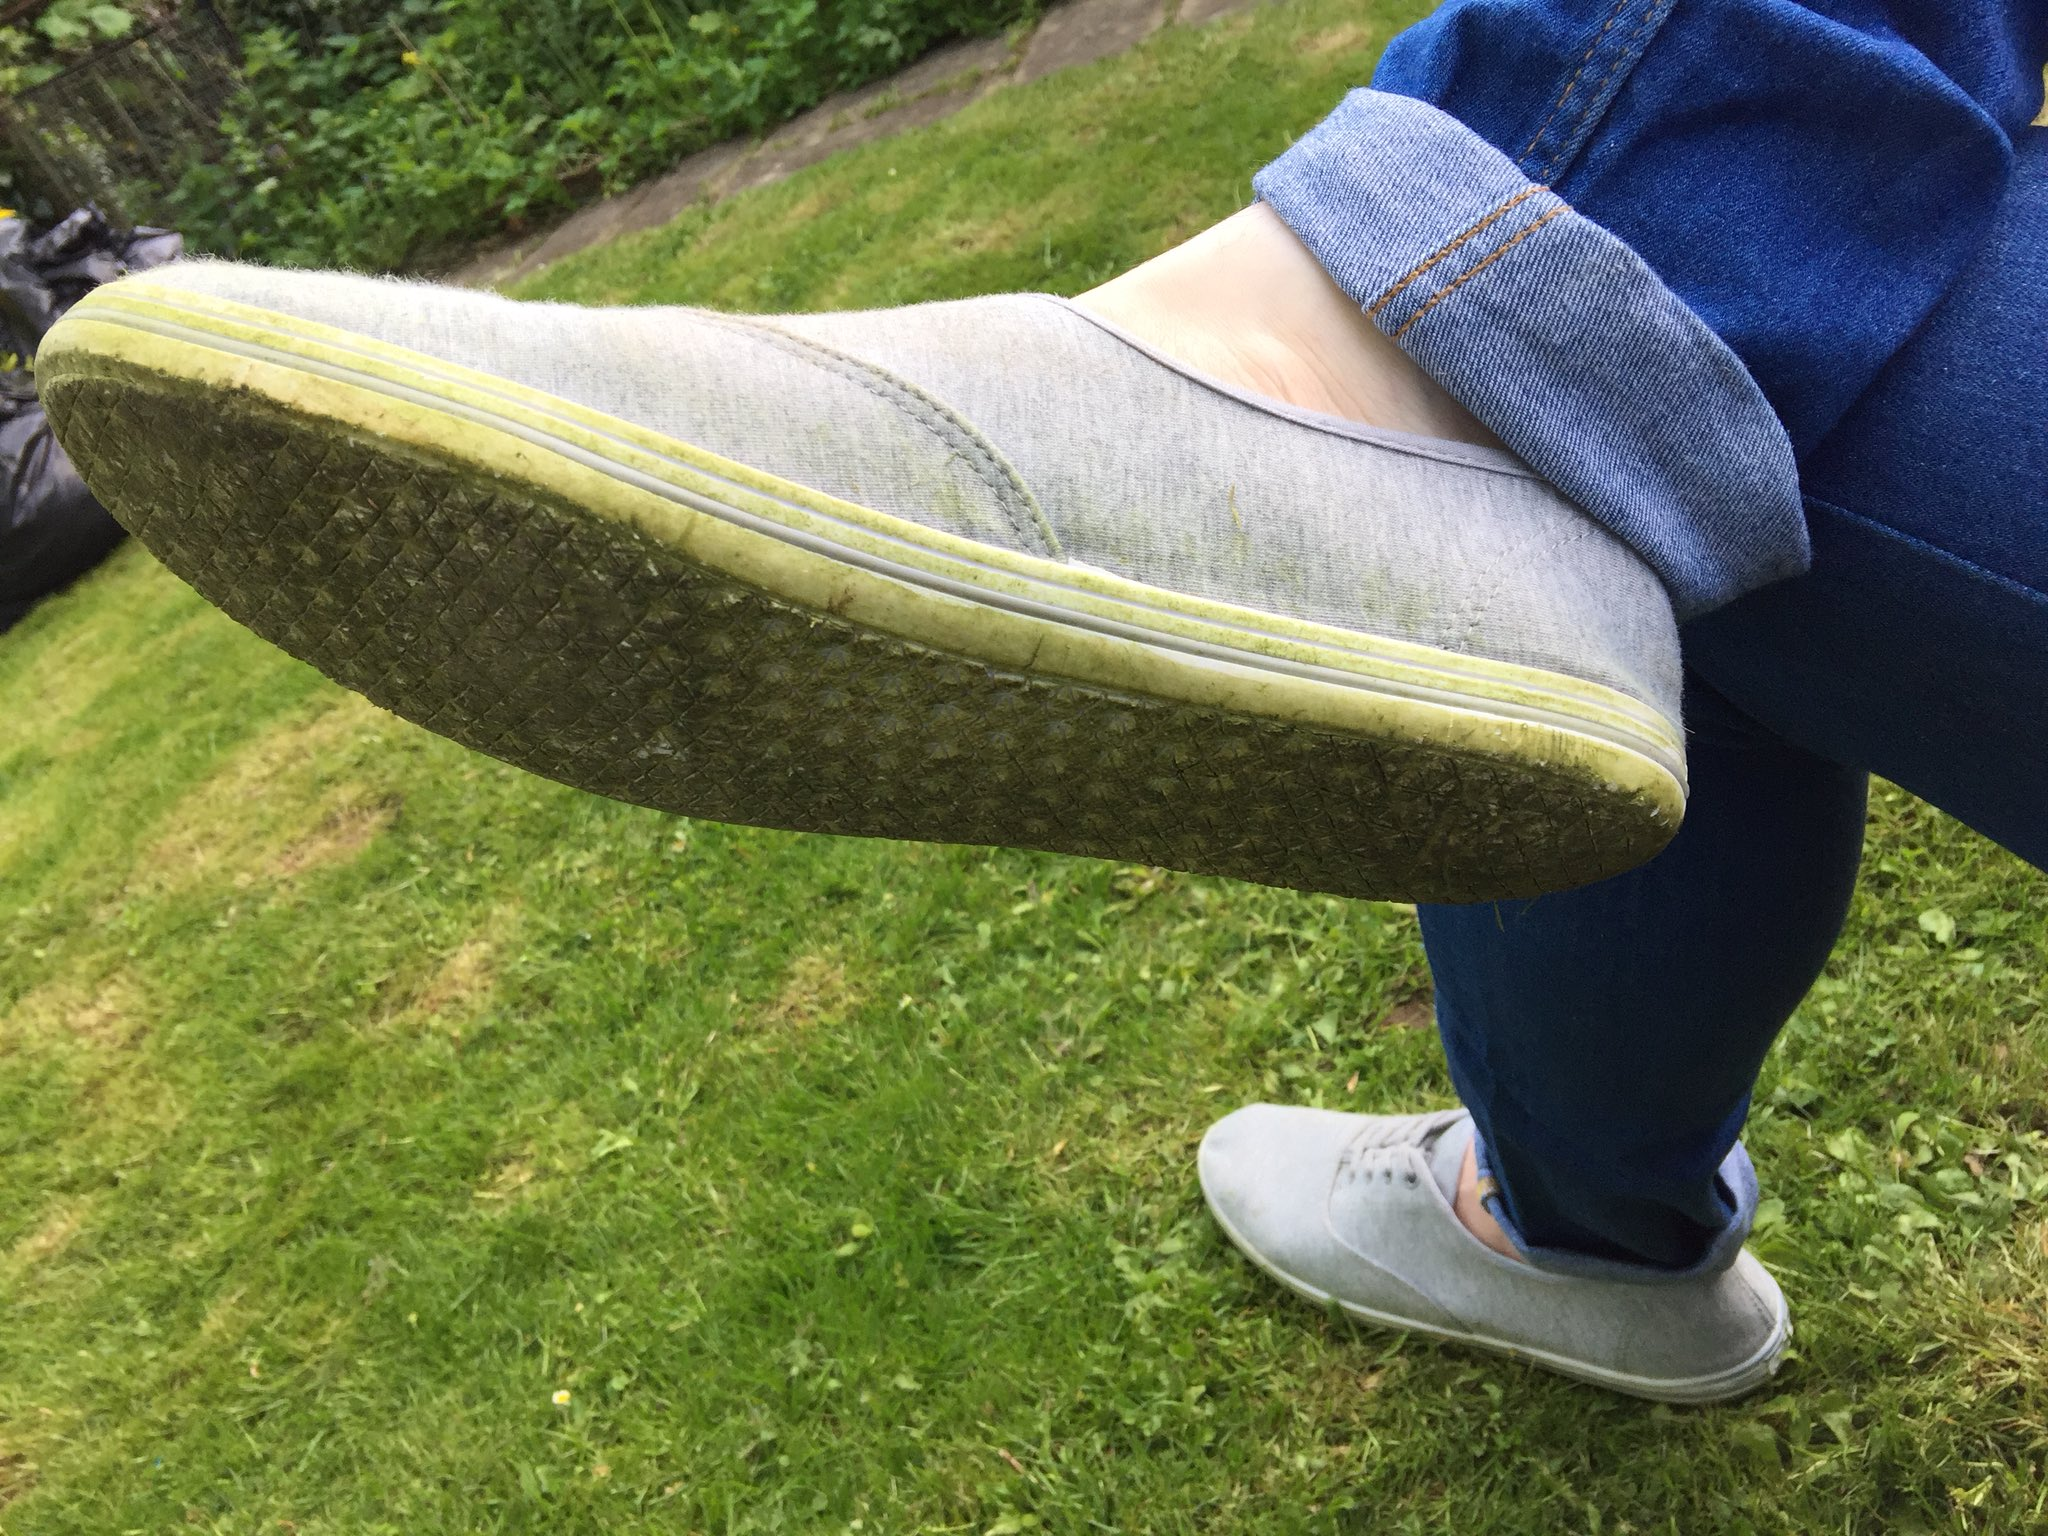 Master Dan on Twitter: Dirty shoes need licking whilst I